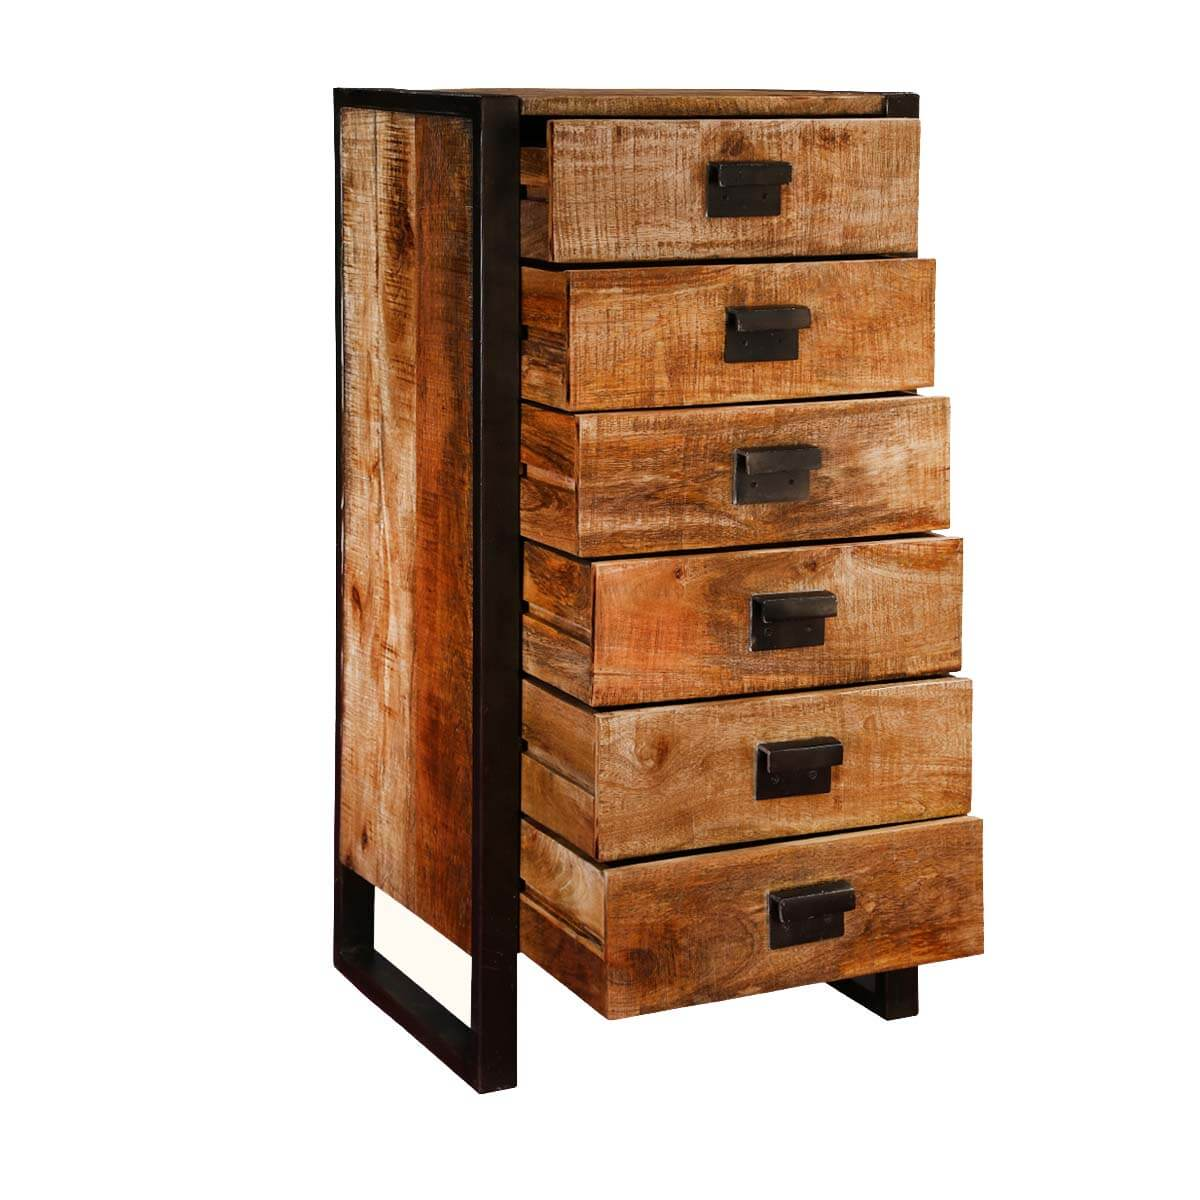 Roxborough industrial rustic wood drawer chest